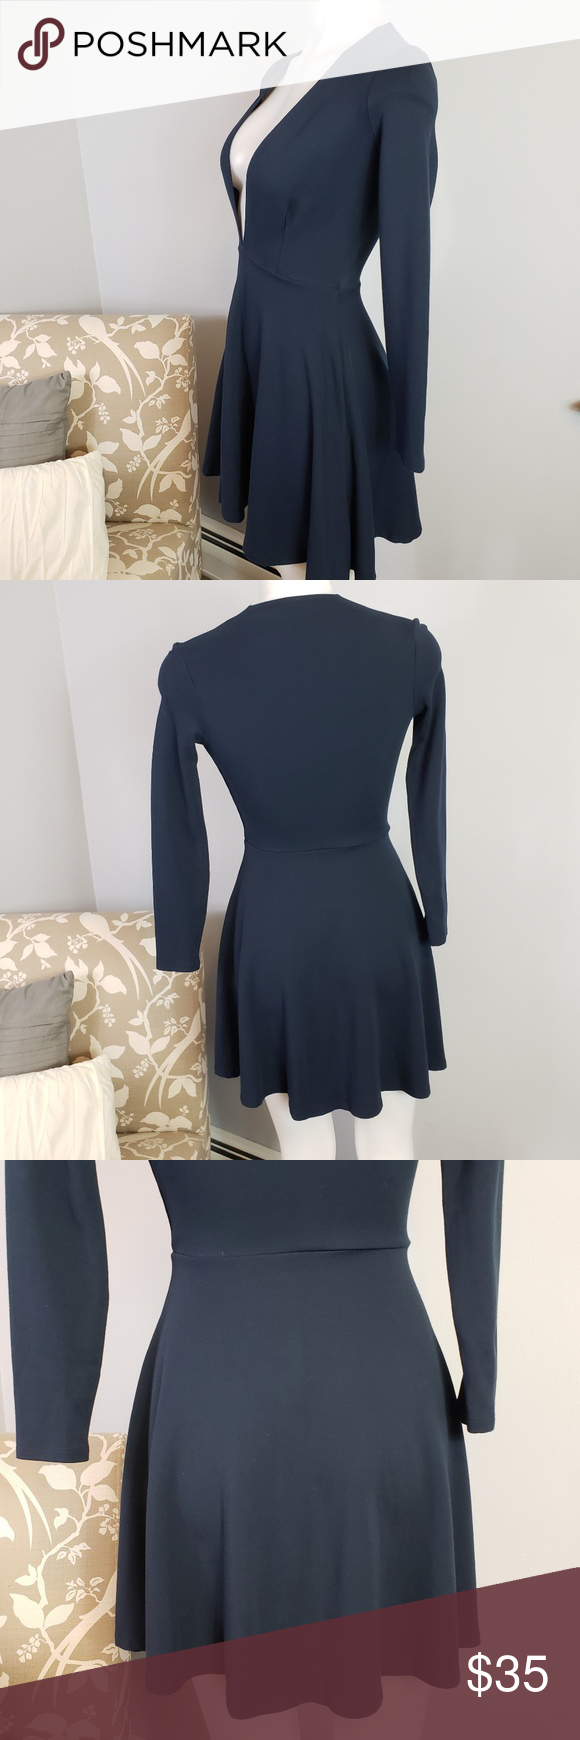 8c79937ec6 American Apparel navy deep v-neck skater dress Like new! American Apparel  navy blue long sleeve skater dress. Deep v-neck. Stretchy 60% rayon